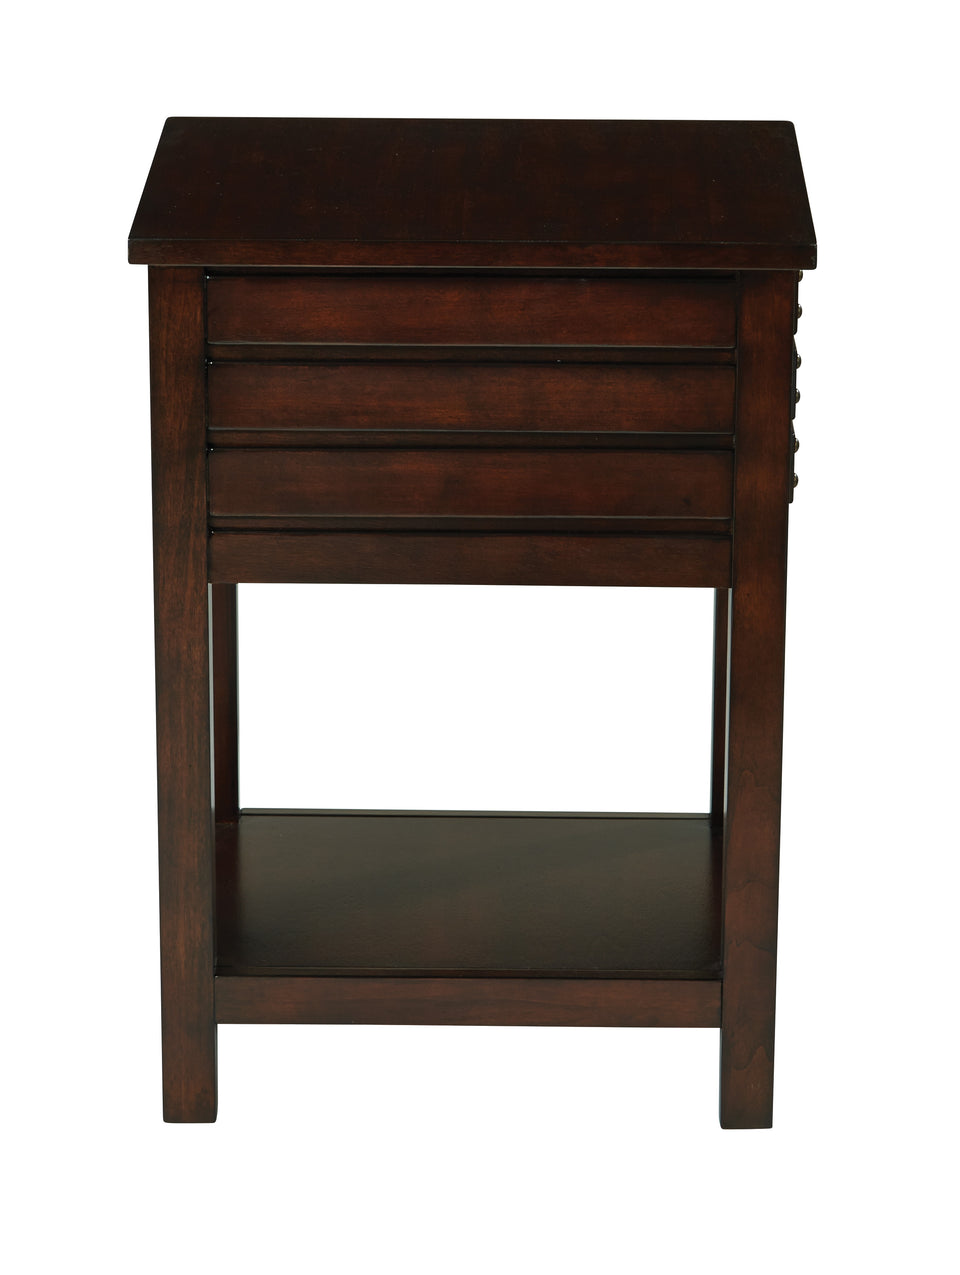 camille walnut side table with nailhead accents and single drawer side view